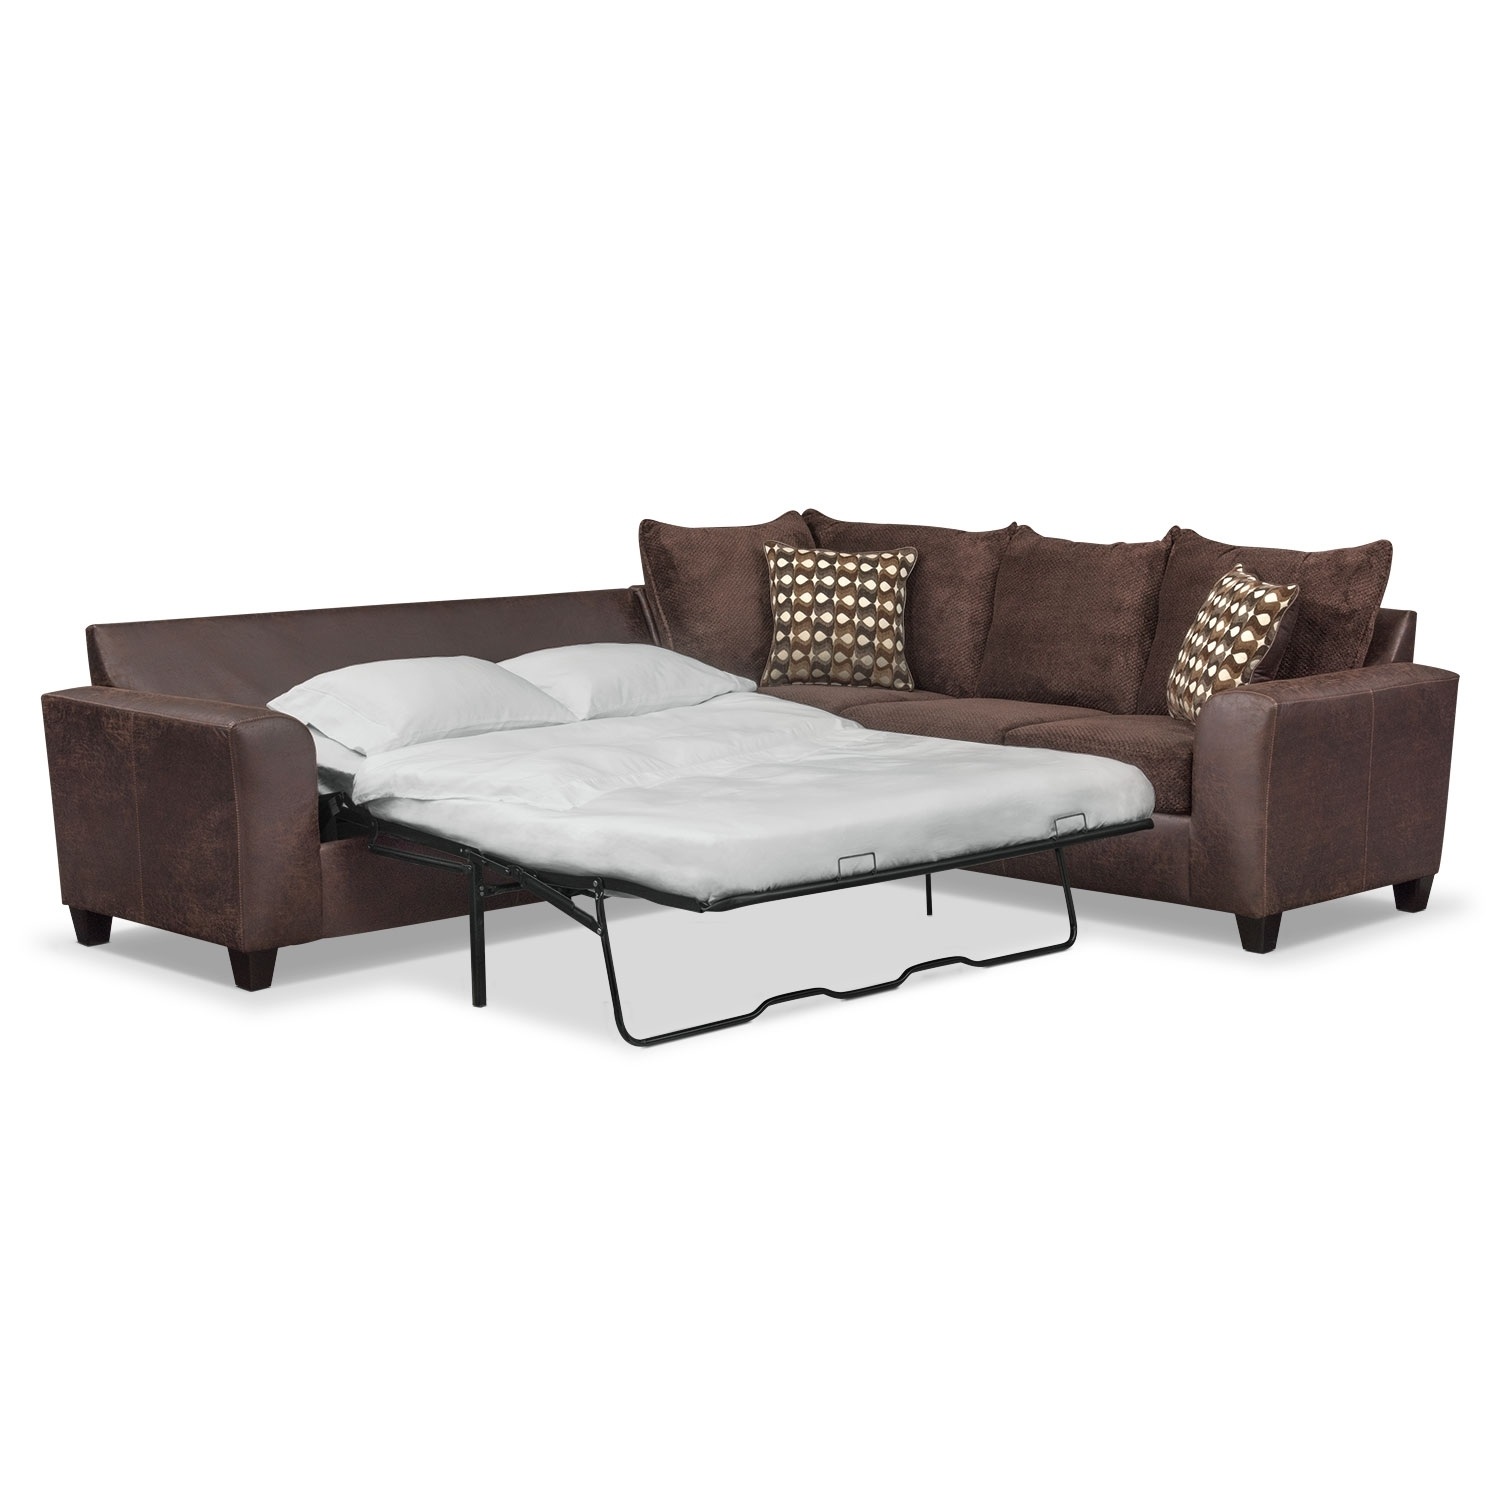 Brando 2 Piece Innerspring Sleeper Sectional – Chocolate | Value With Regard To Aurora 2 Piece Sectionals (Image 9 of 25)